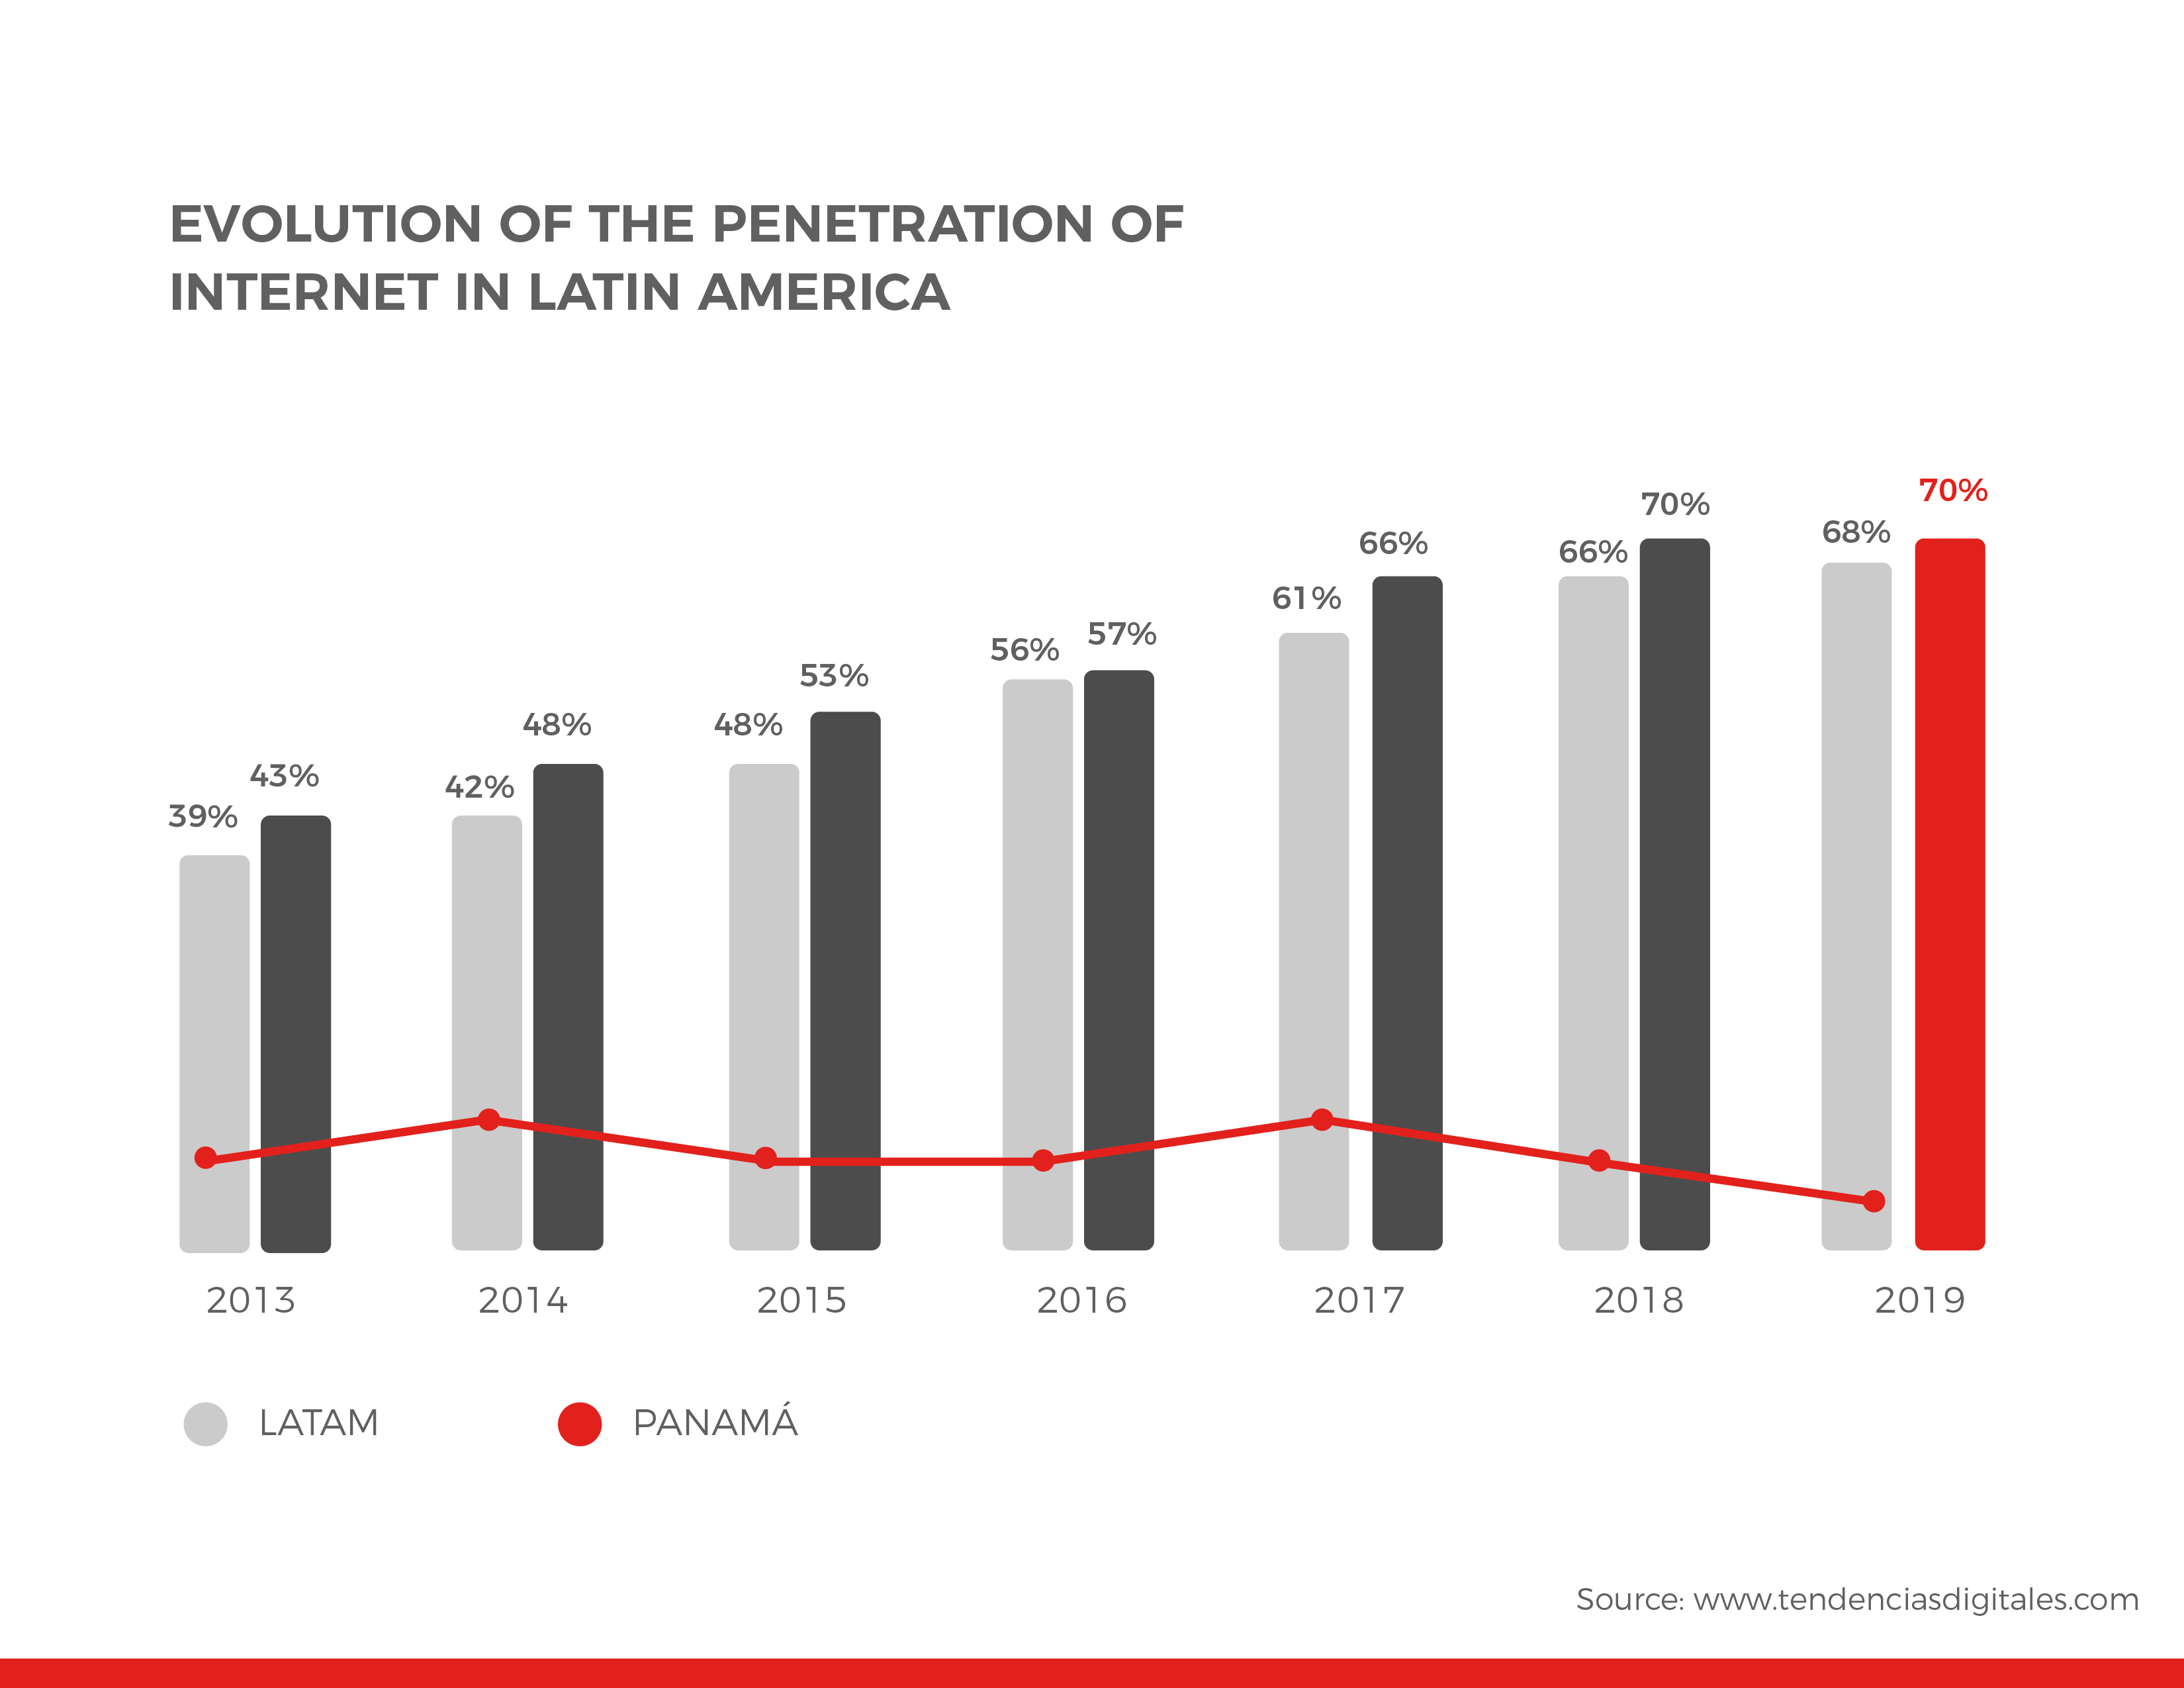 EVOLUTION OF THE PENETRATION OF INTERNET IN LATIN AMERICA